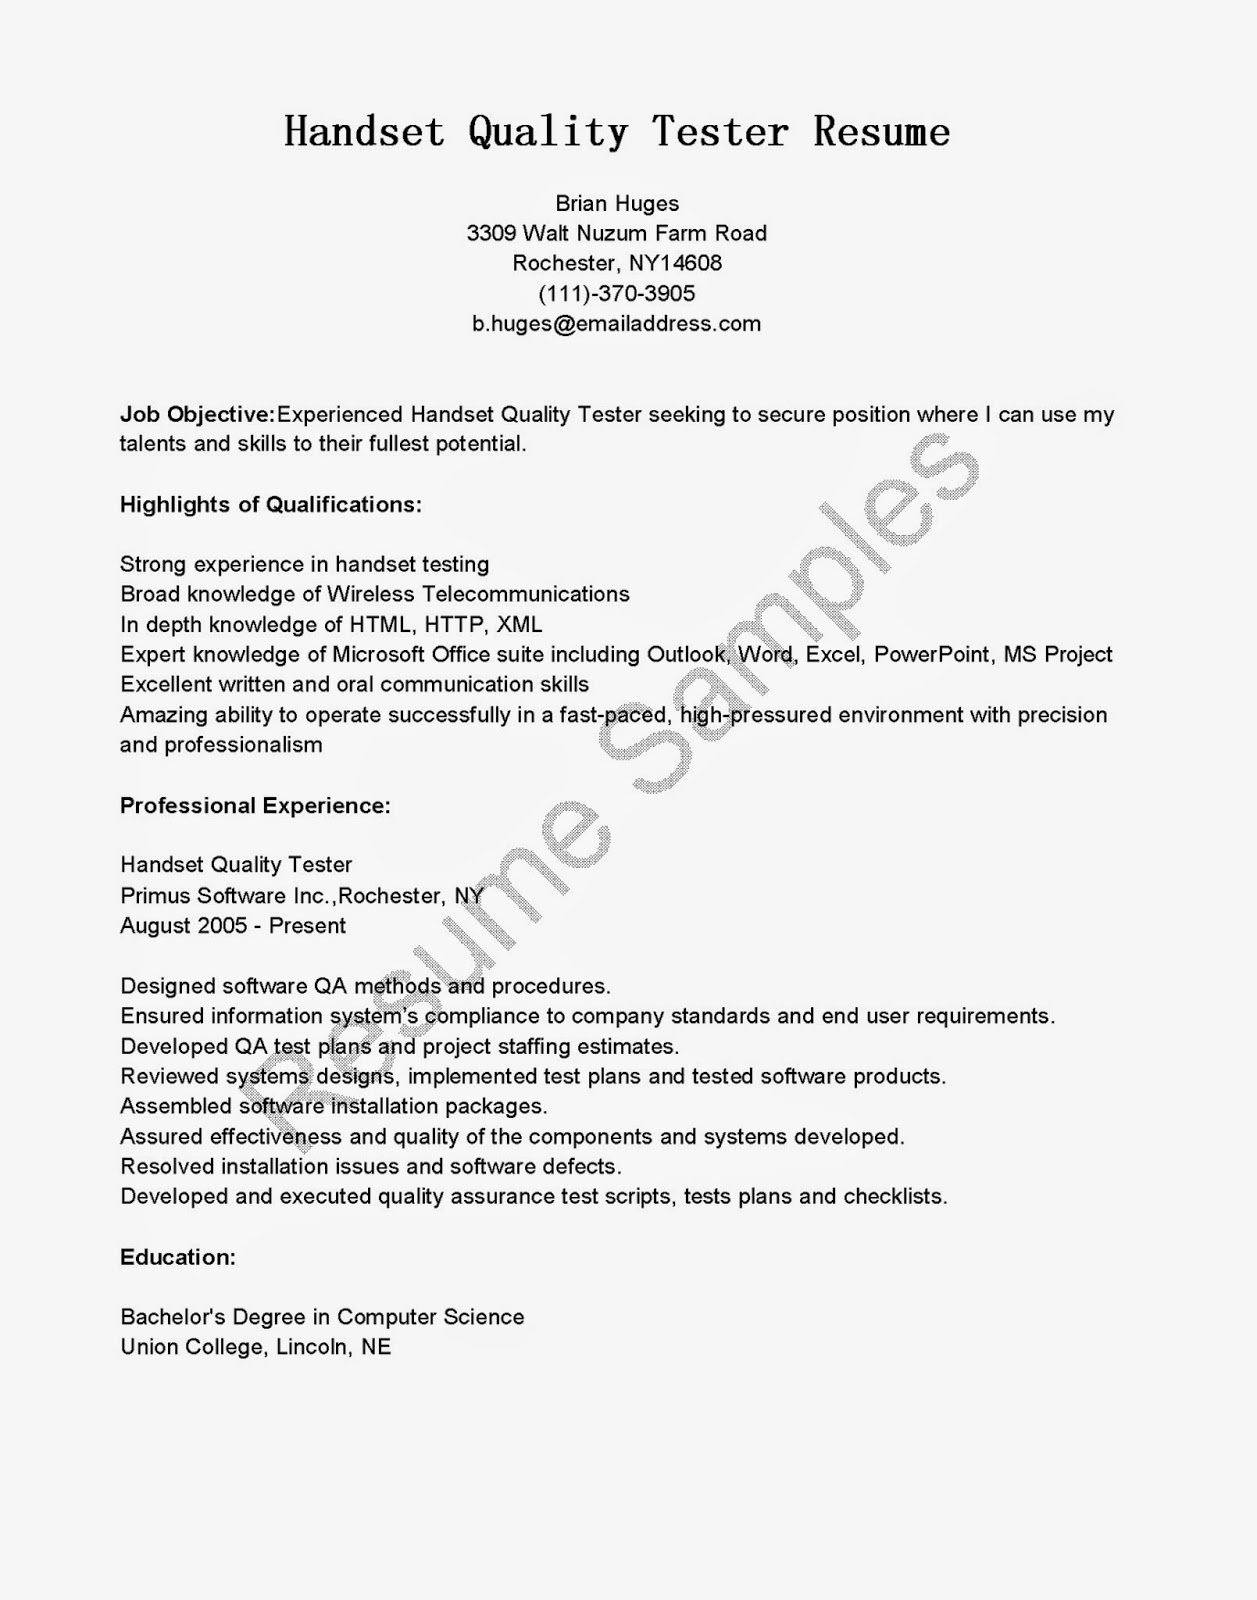 hvac inspector qc resume sample quality assurance technician qc resume - Sample Resume Of Software Quality Engineer